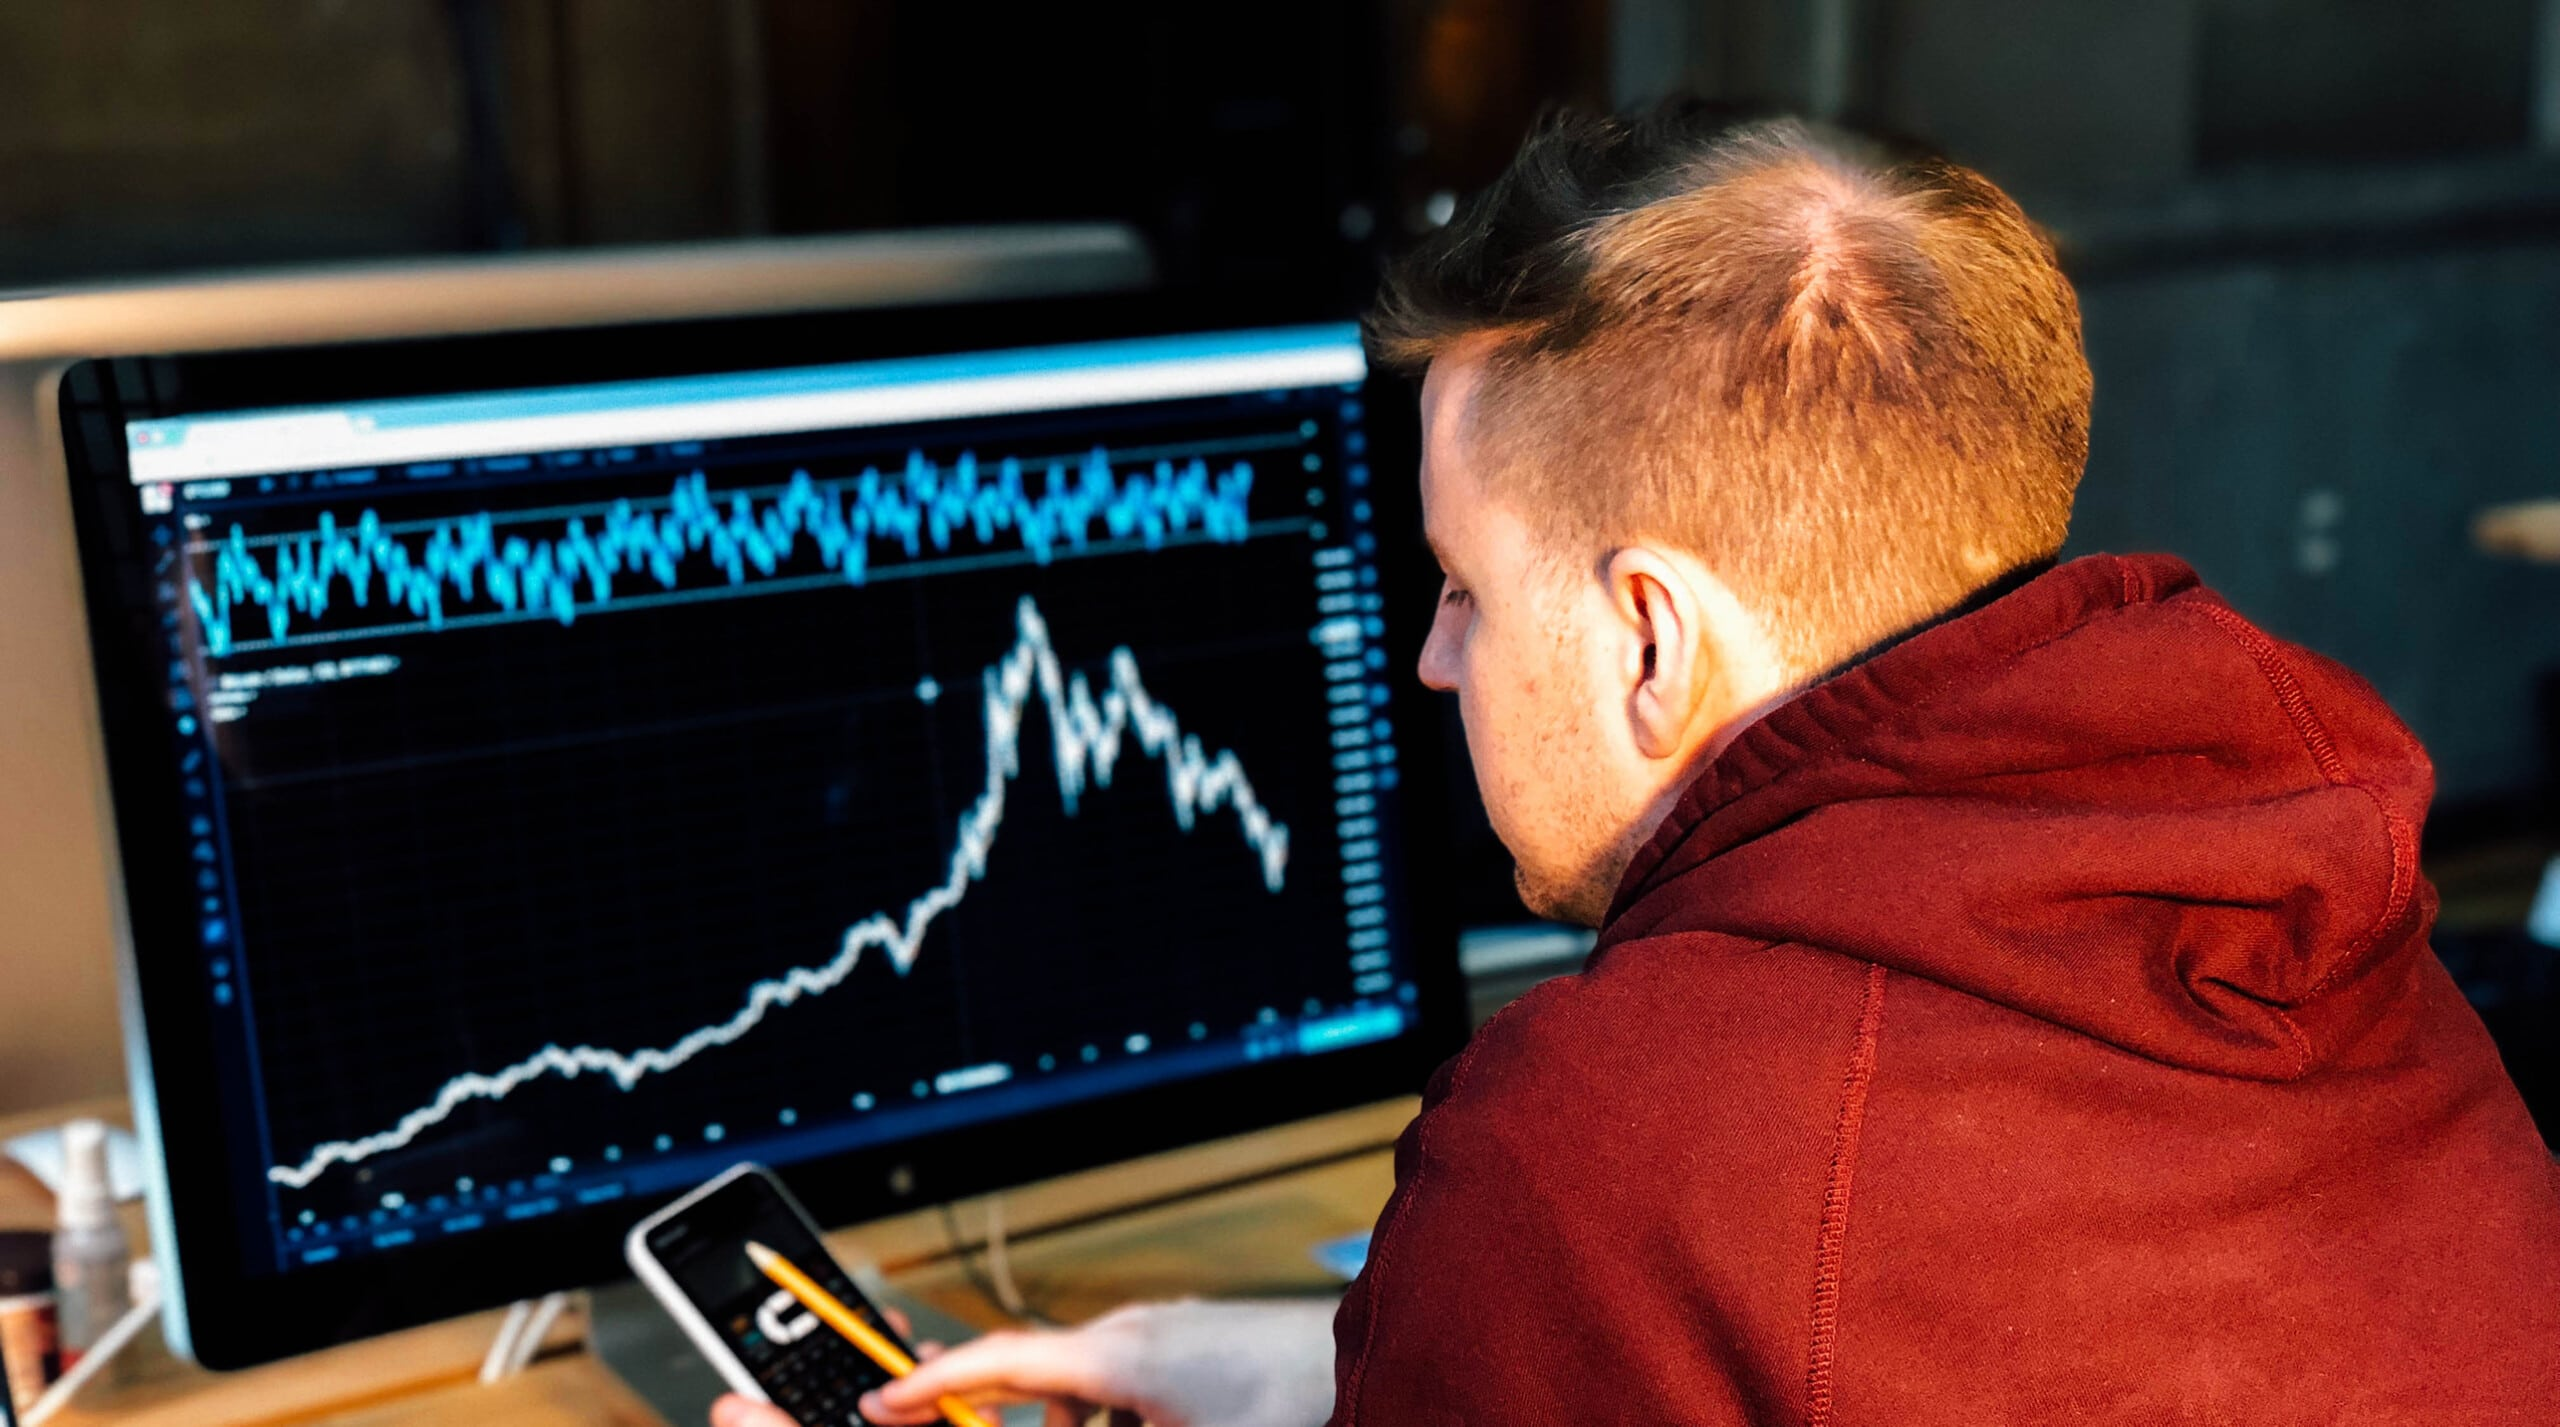 man looking at his phone with stock exchange graphs